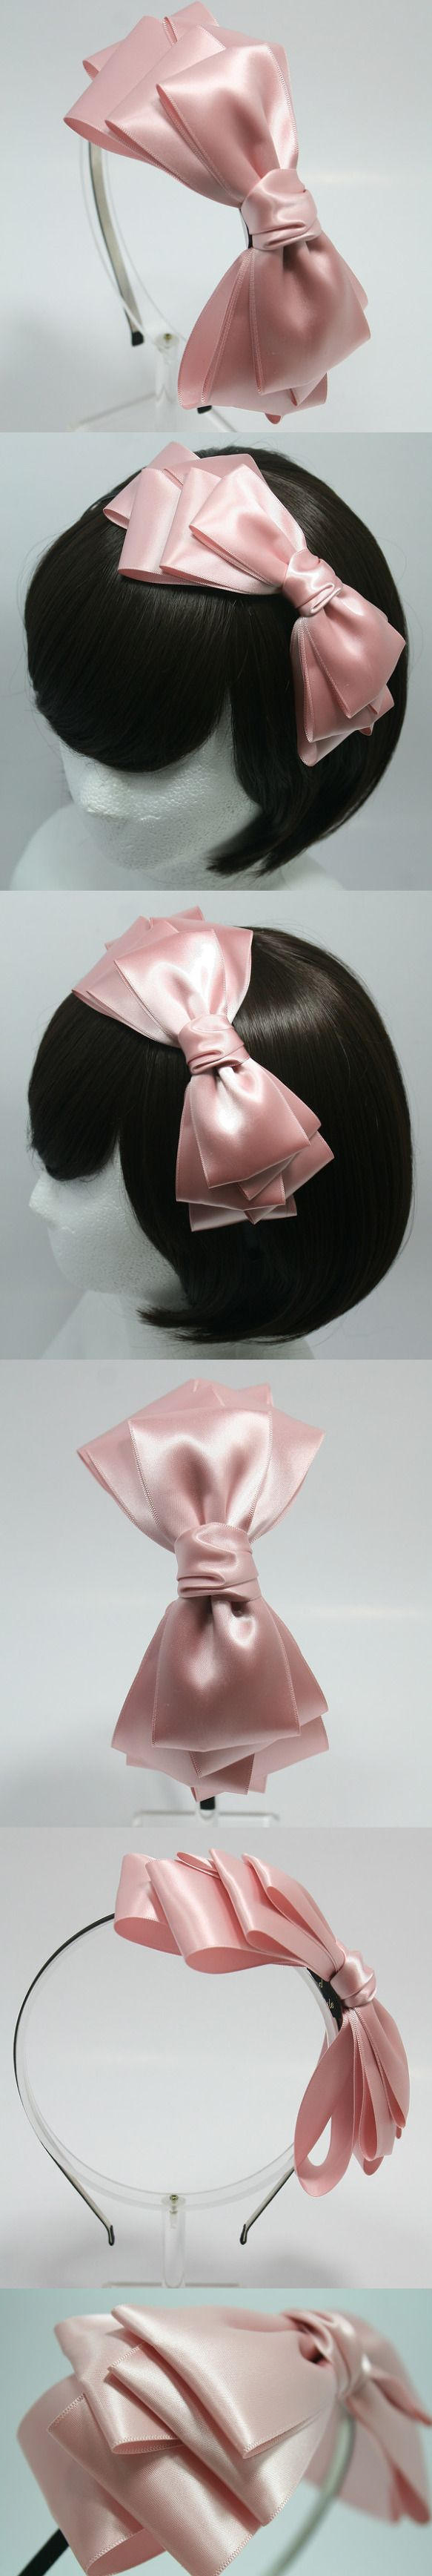 Gossip Girl Headband Hair Accessory Hat Bow Band HB1373 | eBay